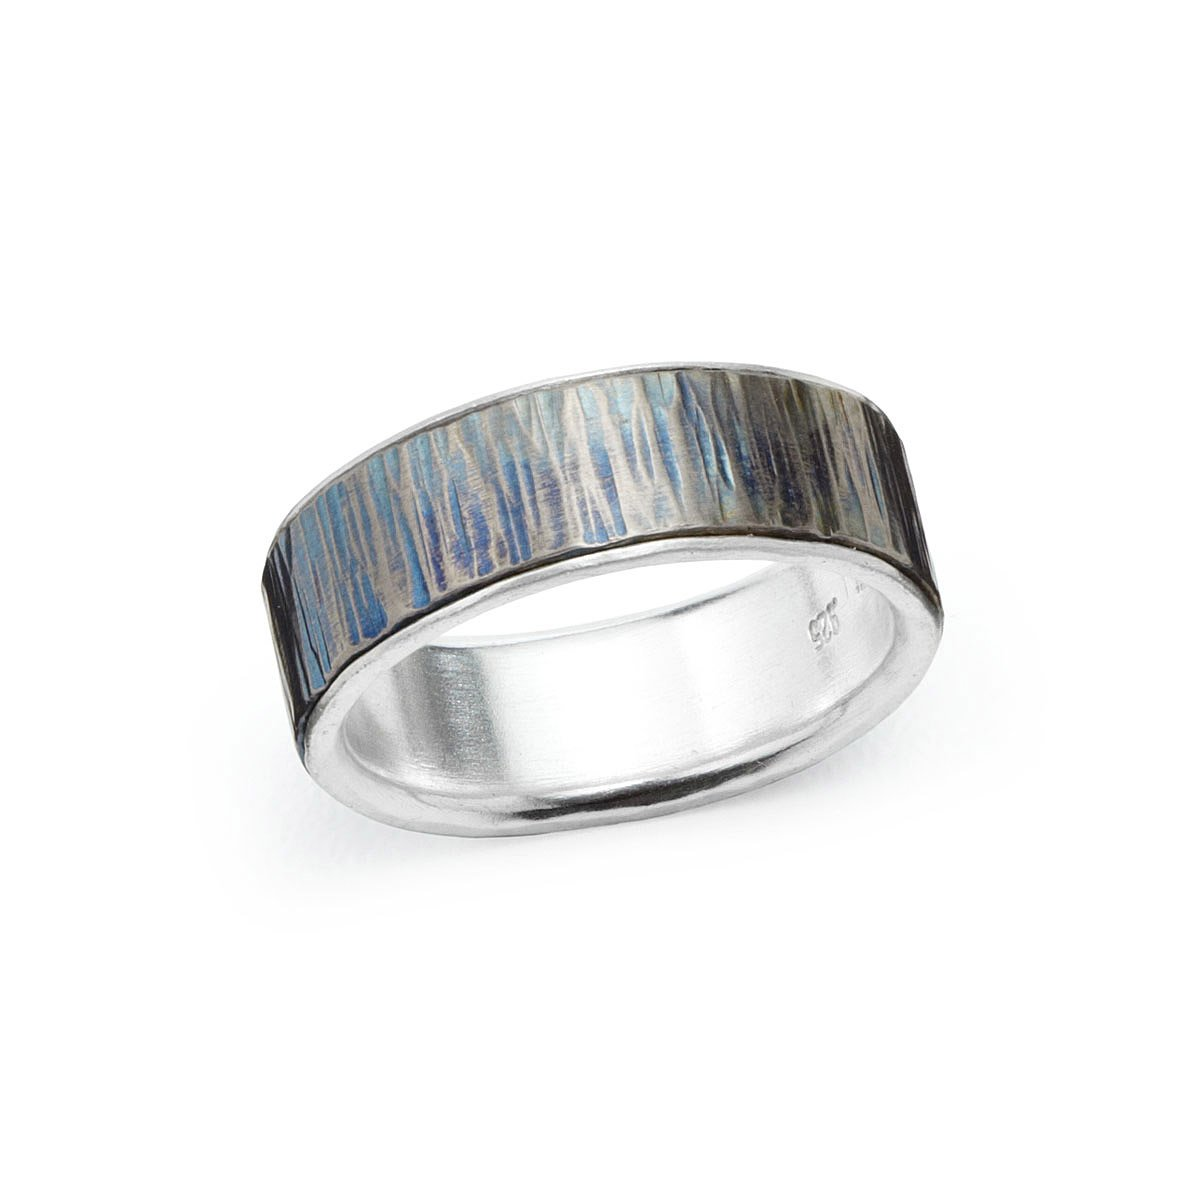 ring product d webstore titanium rings wedding samuel number men h diamond s engagement